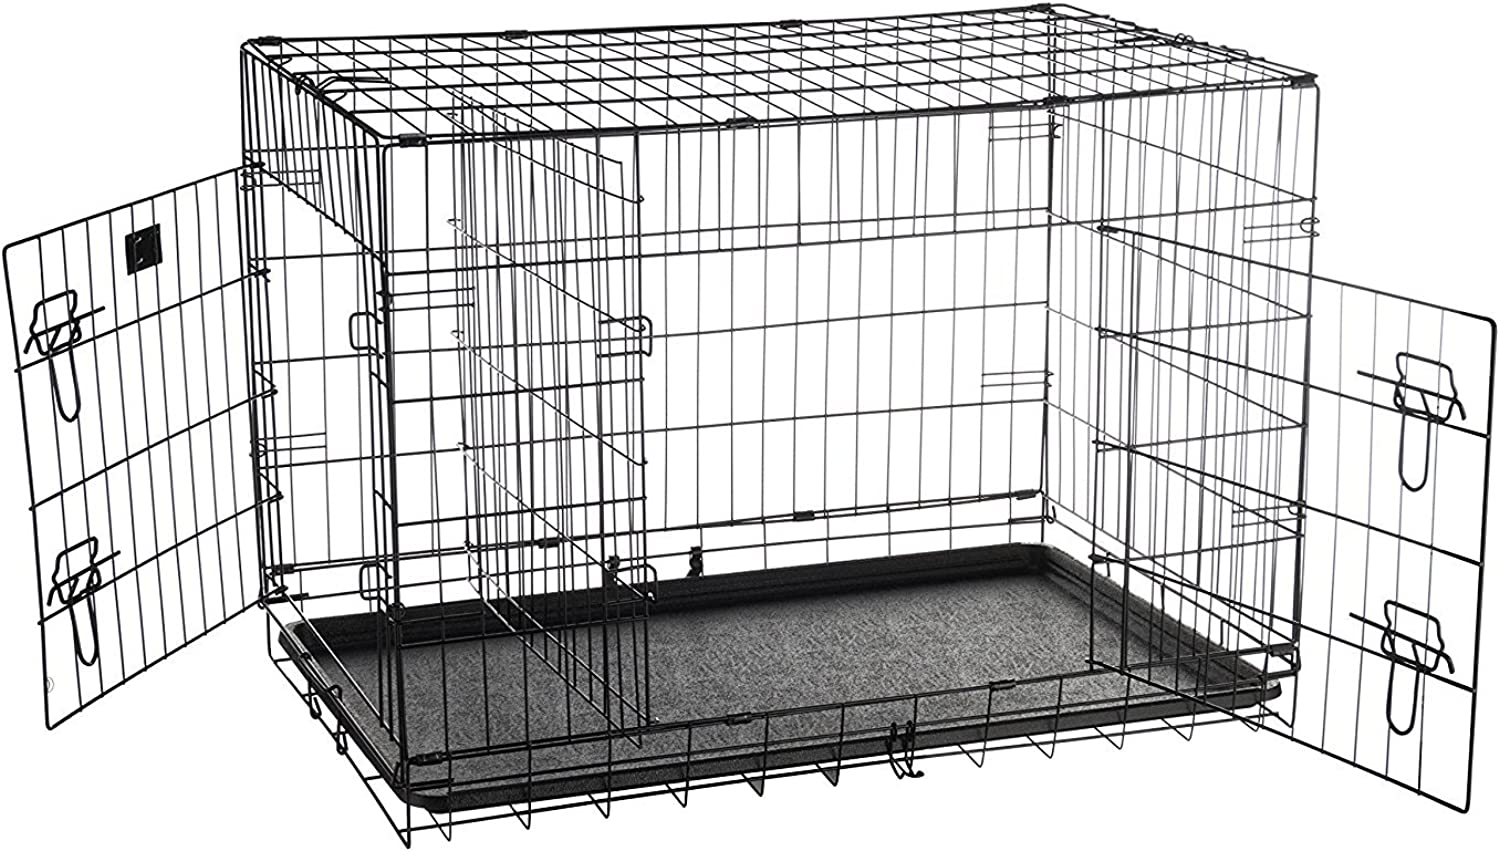 Pet Trex 2192 ABS 36 Inch Dog Crate Double Door Folding Pet Crate Kennel, 36